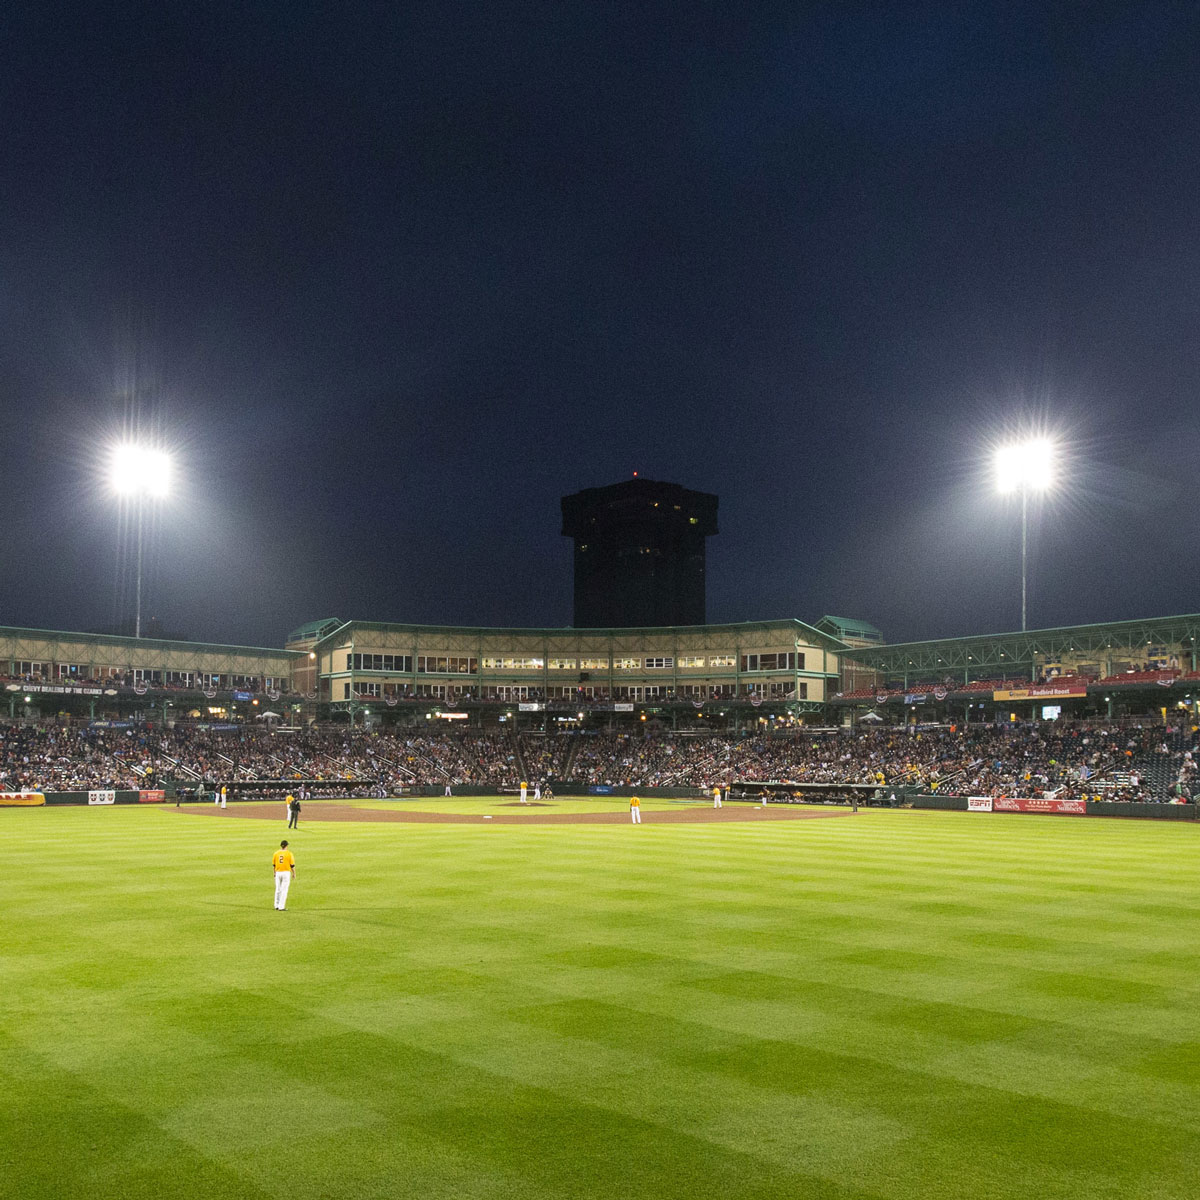 Nighttime at Hammons Field as seen from outfield.